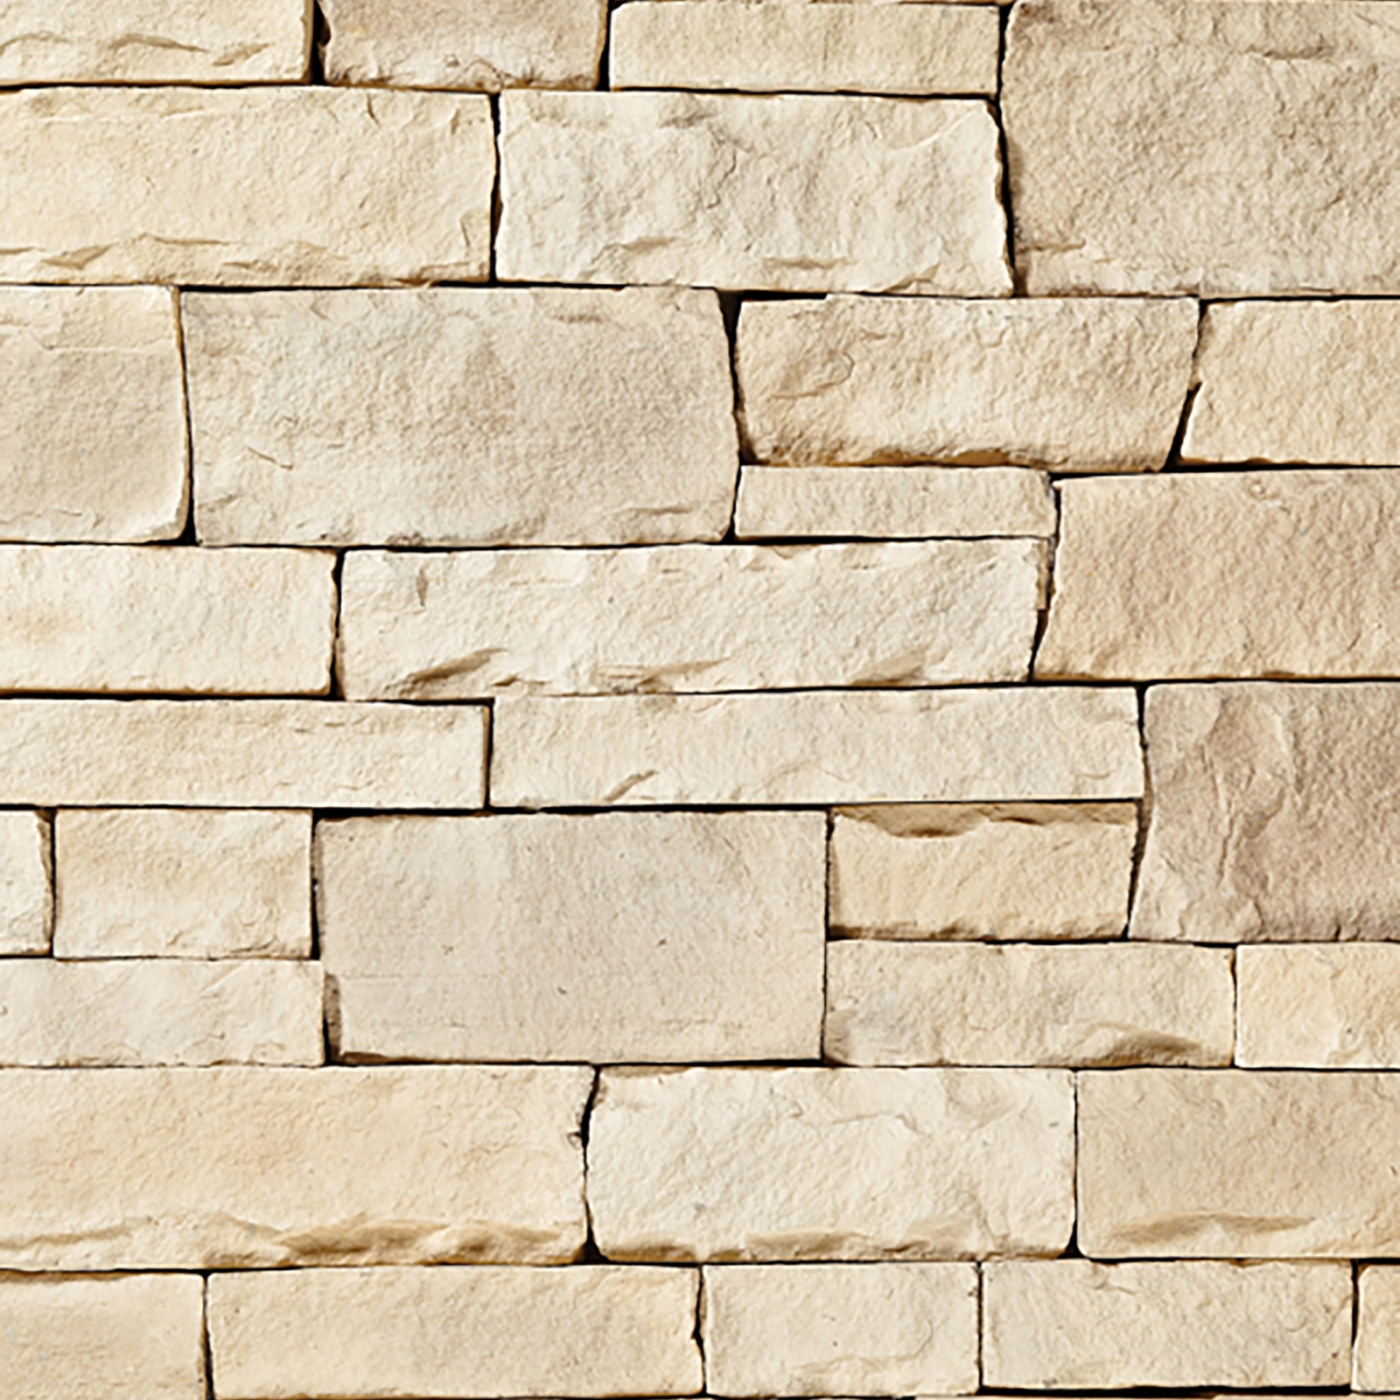 Stone Veneer White : Stone veneer white pictures to pin on pinterest daddy